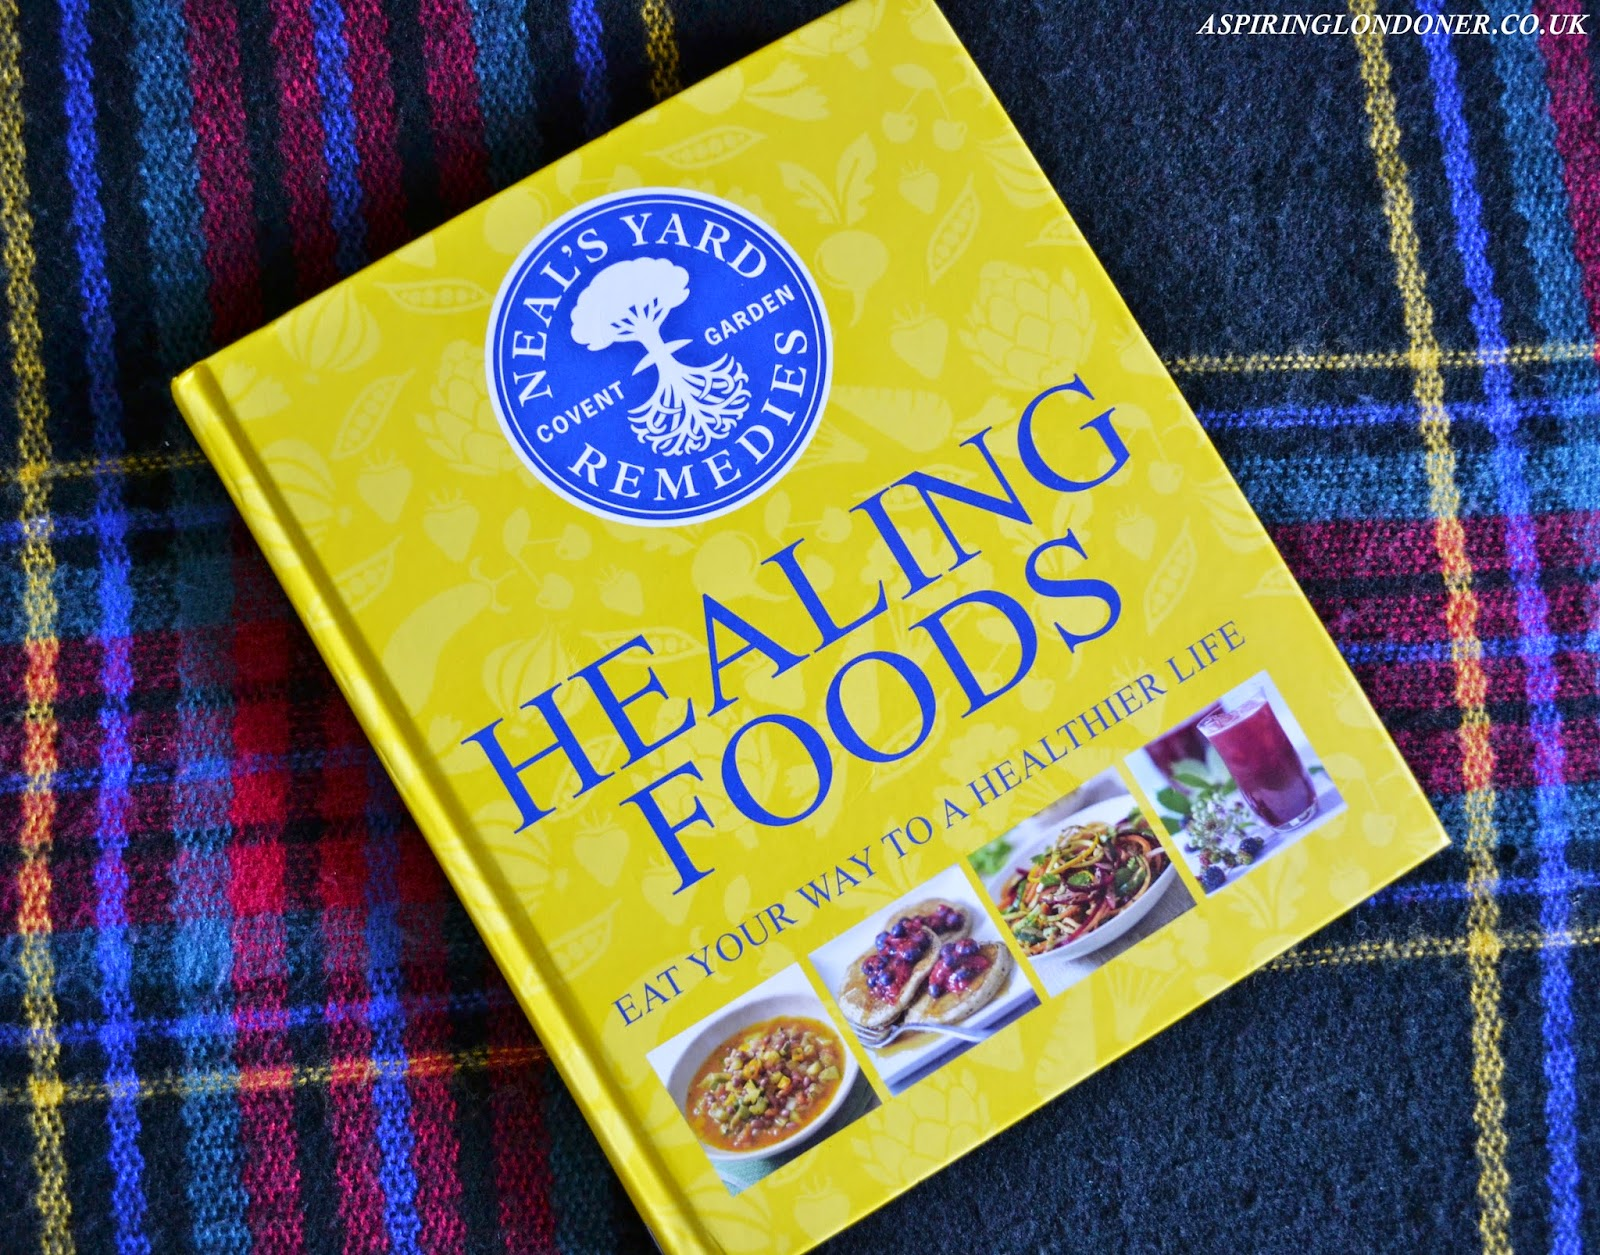 Neal's Yard Remedies Healing Foods Review - Aspiring Londoner